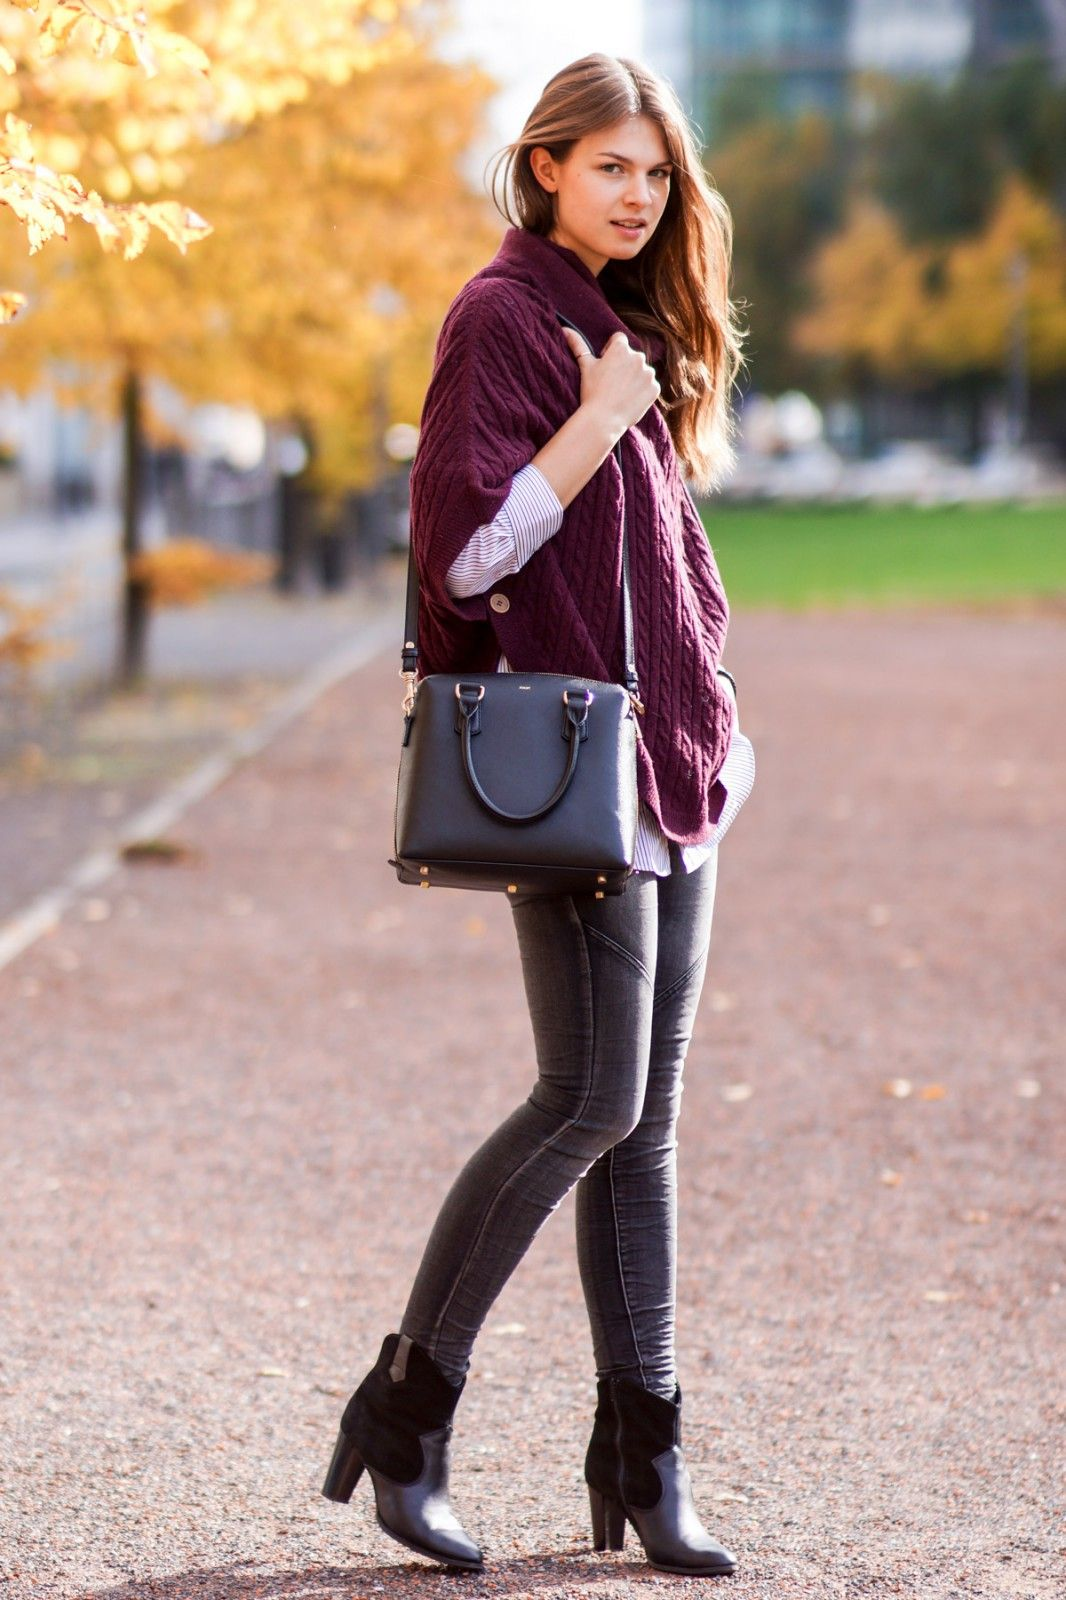 #OwnTheSeason mit TK Maxx Herbst Outfits | Outfit herbst